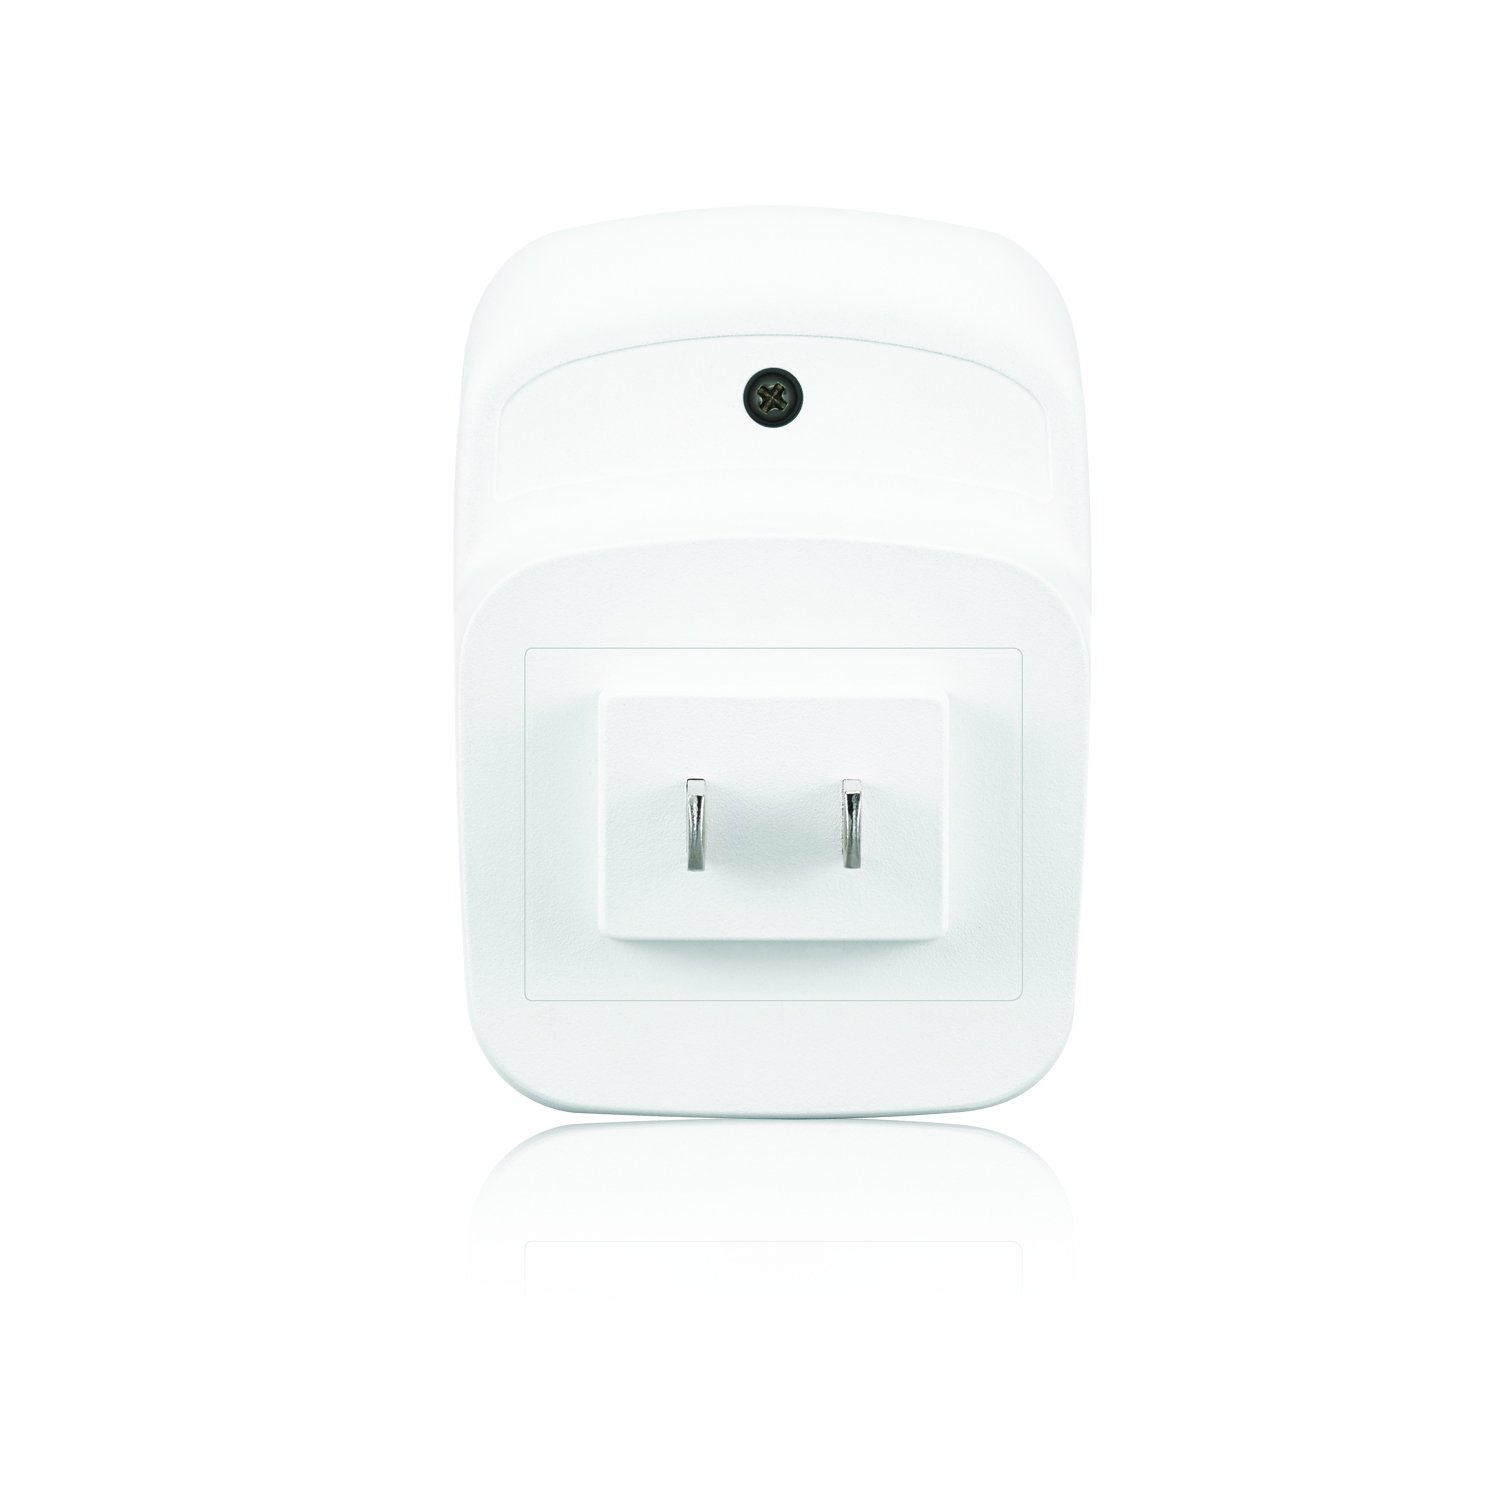 Zyxel AC750 Dual-Band Wireless Range Extender with 3 Extension Modes (WRE6505v2)